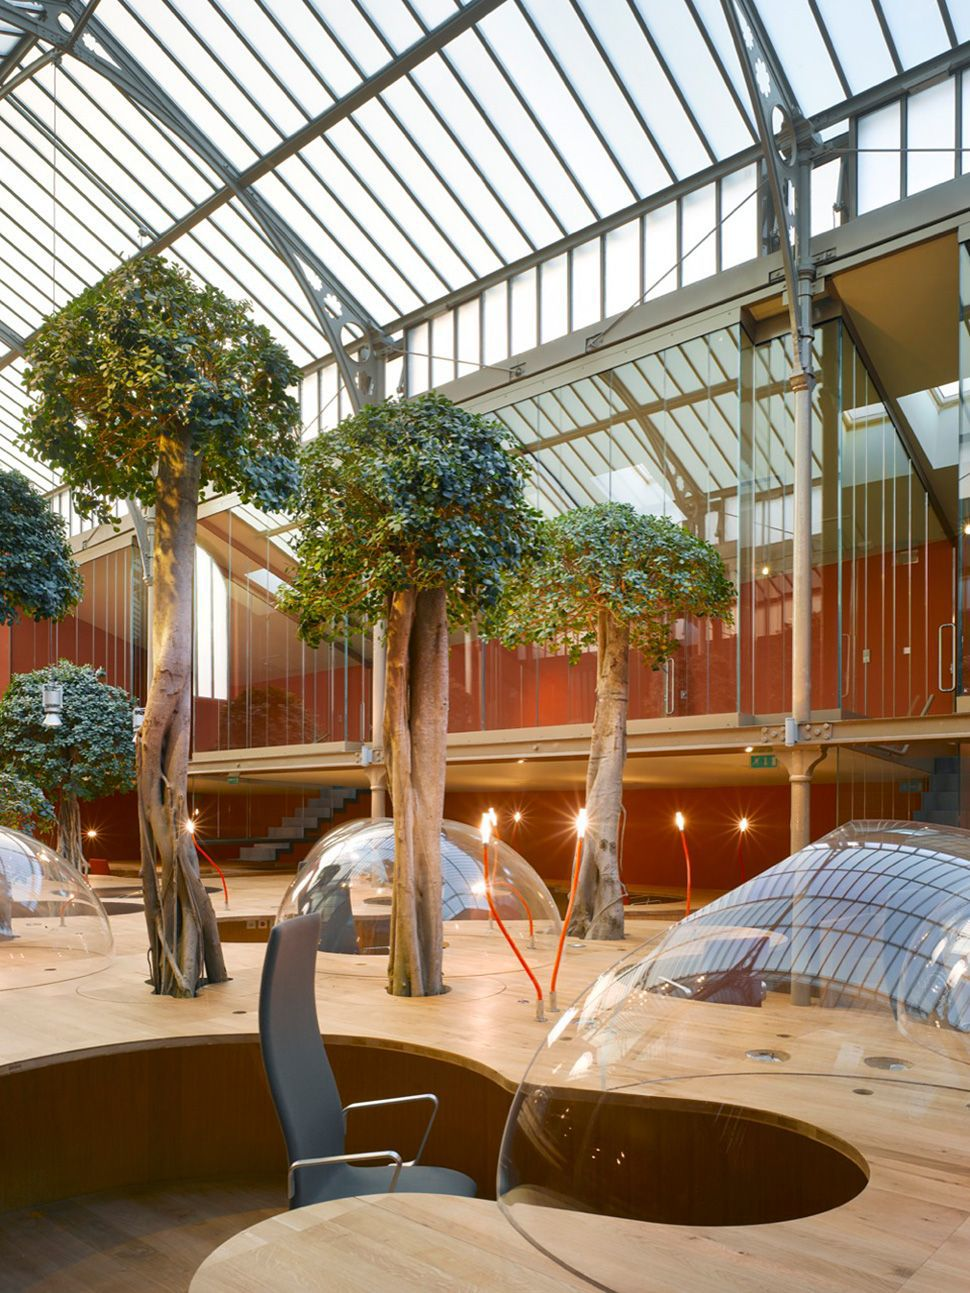 WCO-PONS-and-HOUT-1_archdaily_26936.jpg